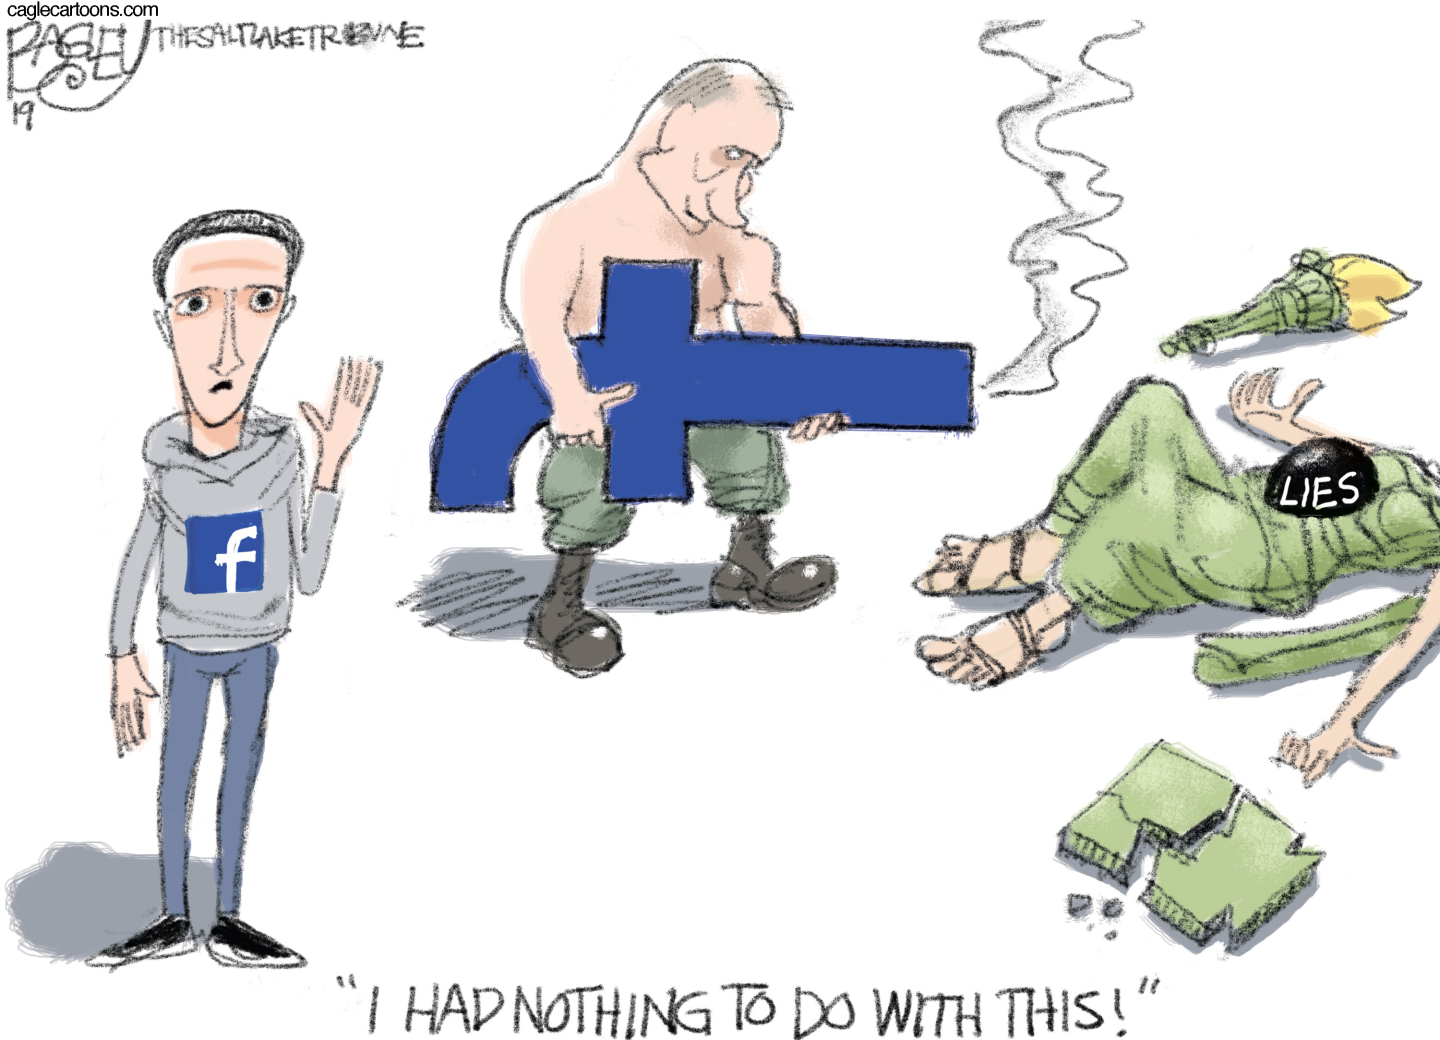 Facebook meddles with elections